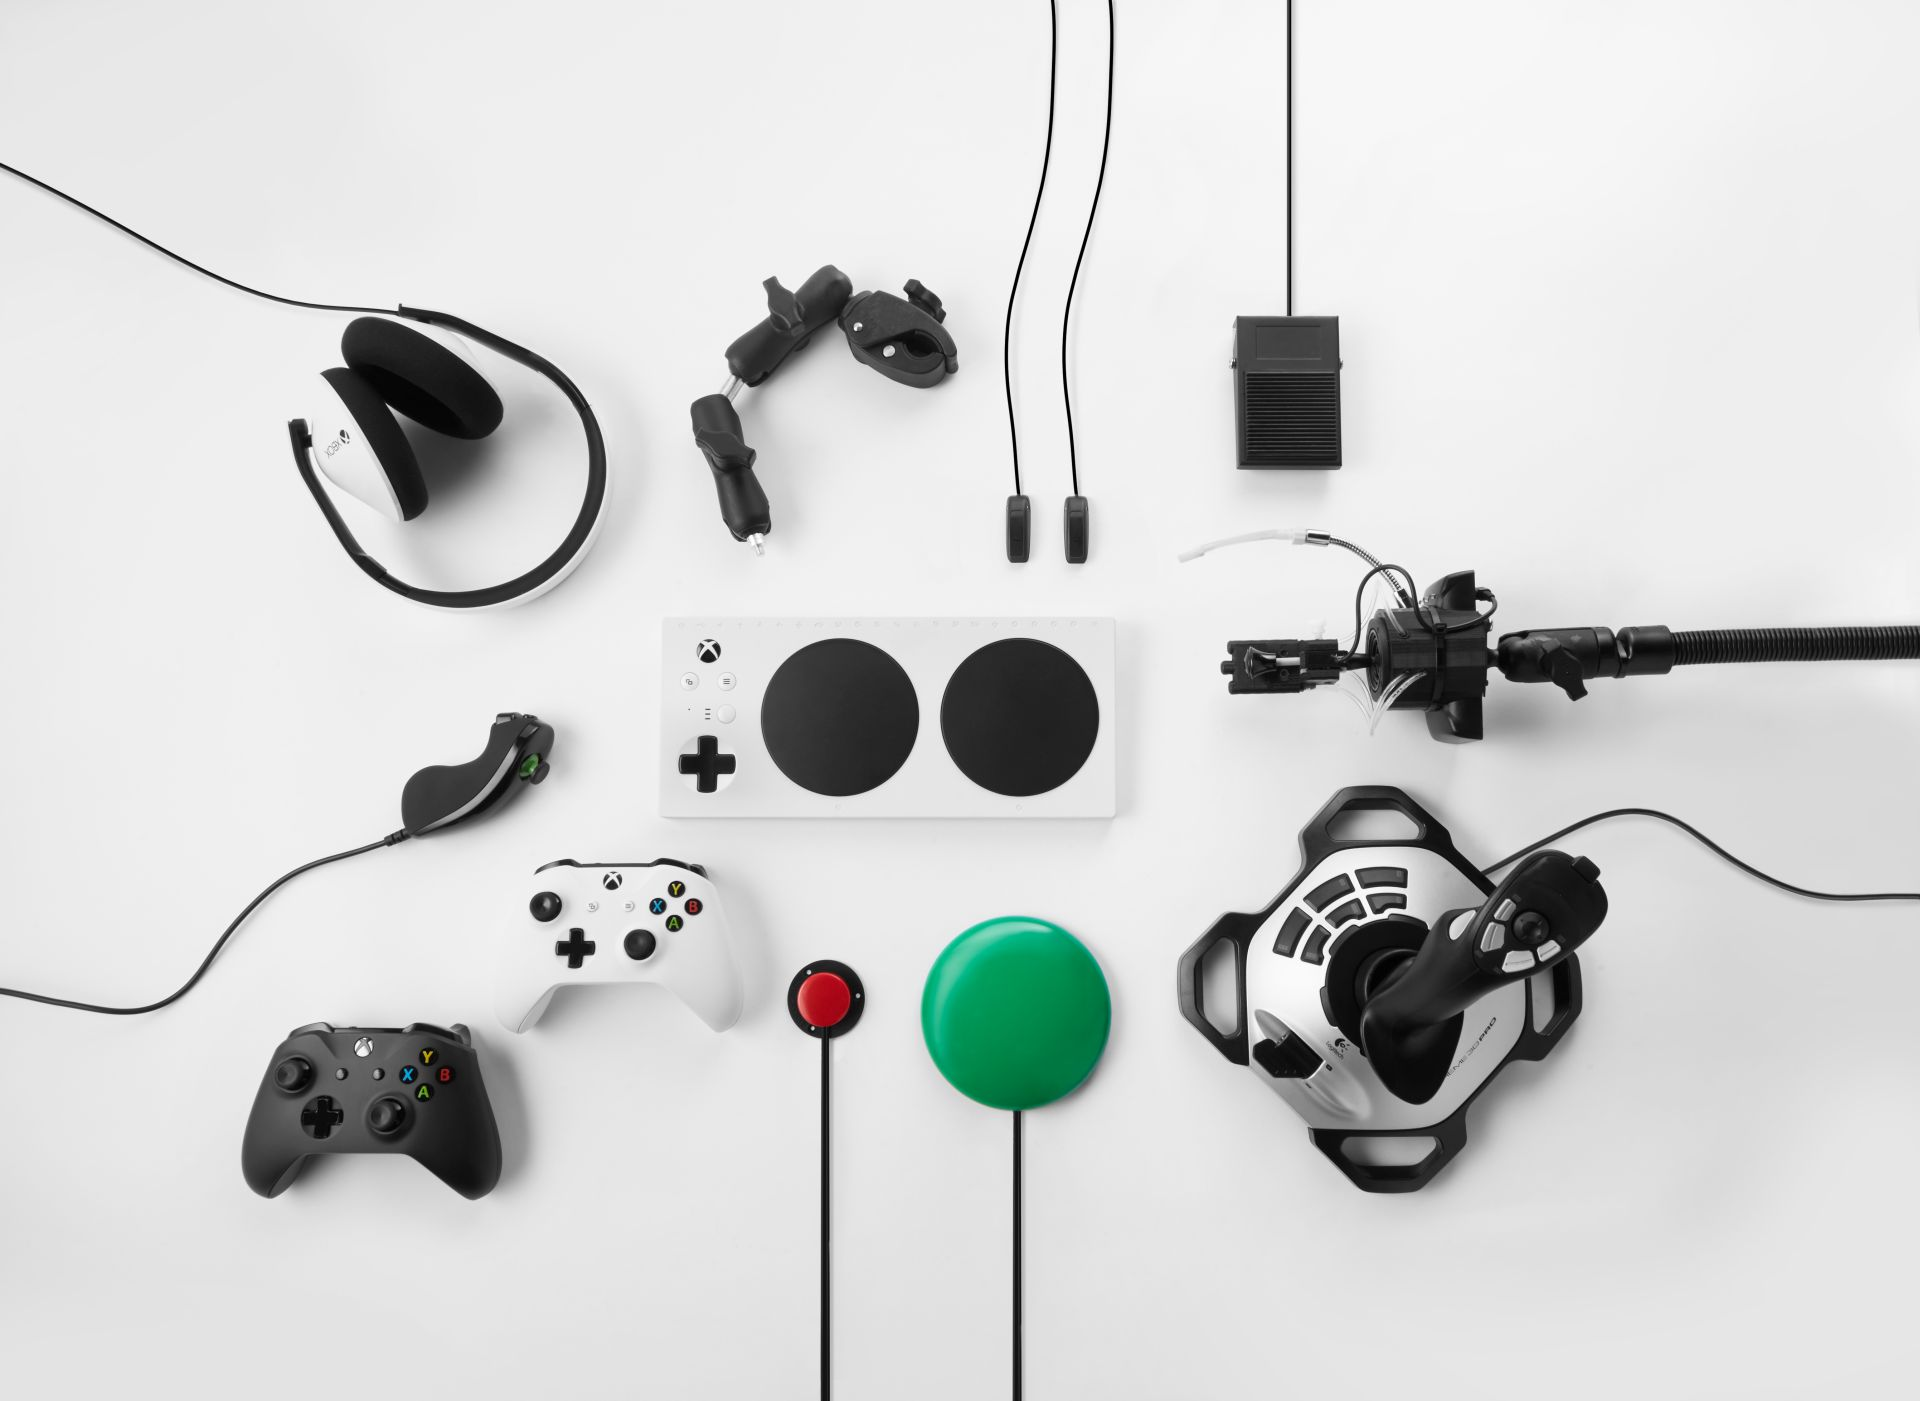 Microsoft Reveals Xbox Adaptive Controller for Xbox One and Windows 10 PC